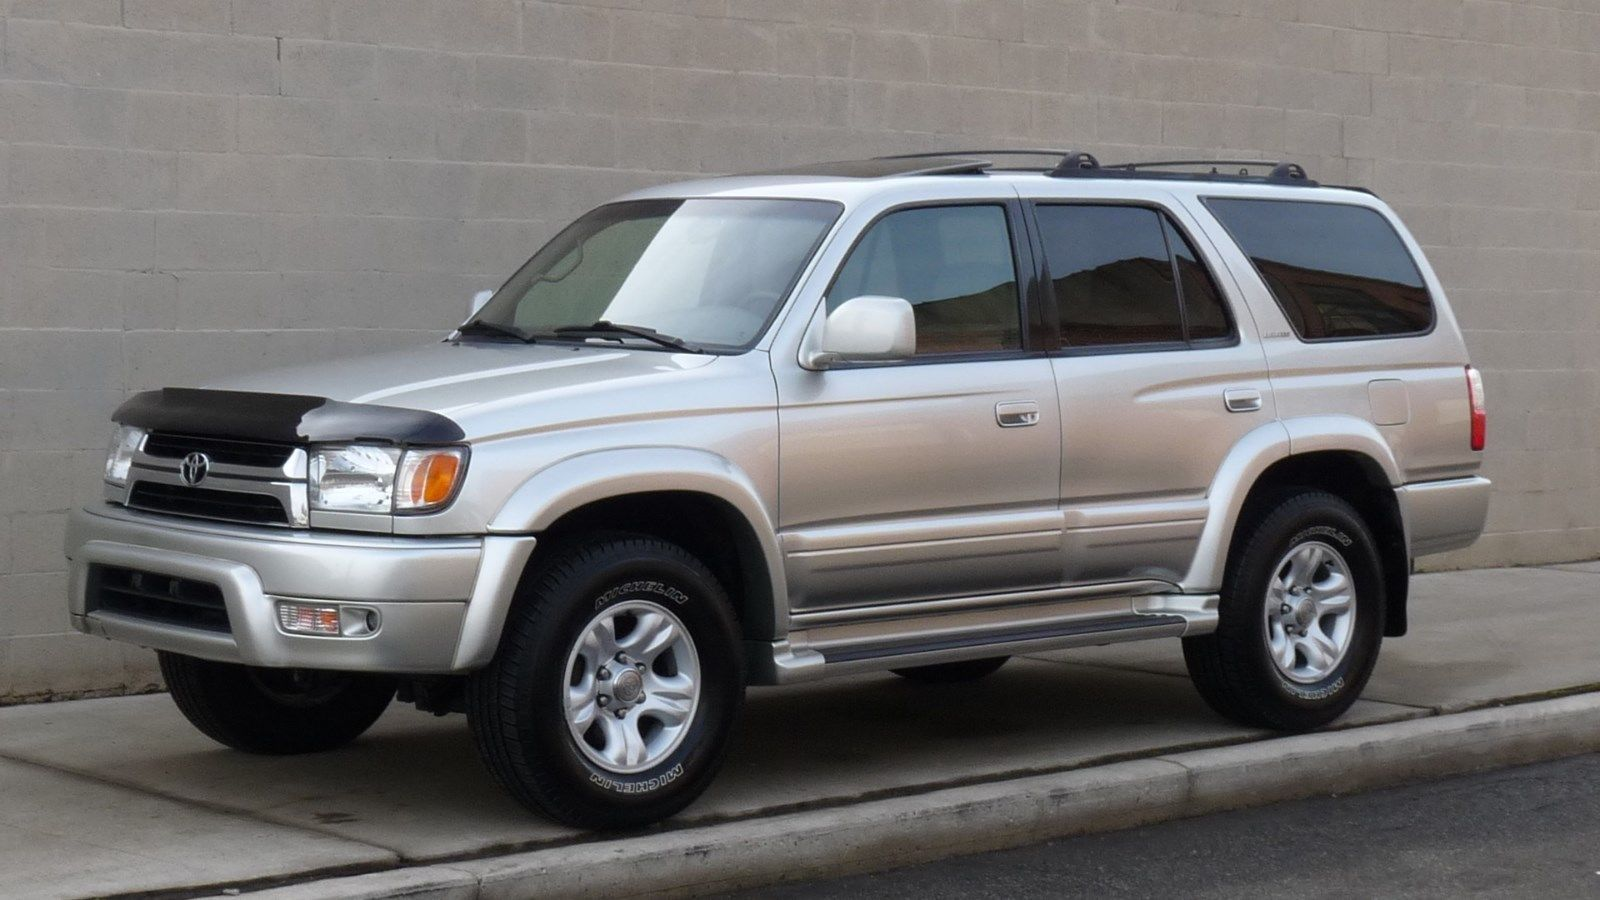 2002 Toyota 4runner Limited Sport Utility 4 Door Luxury Autos Mall Timing Belt For Vehicles 4wd New